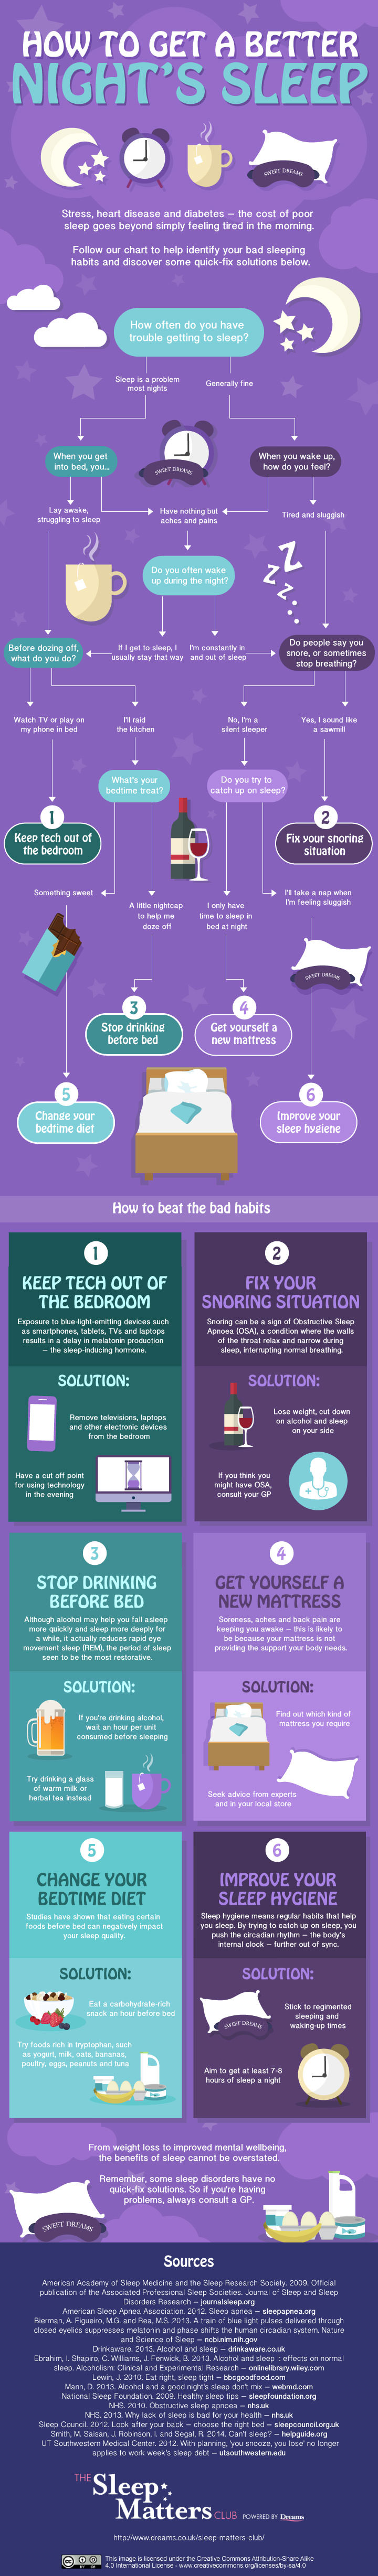 how-to-get-a-better-nights-sleep-infographic-lucid-dream